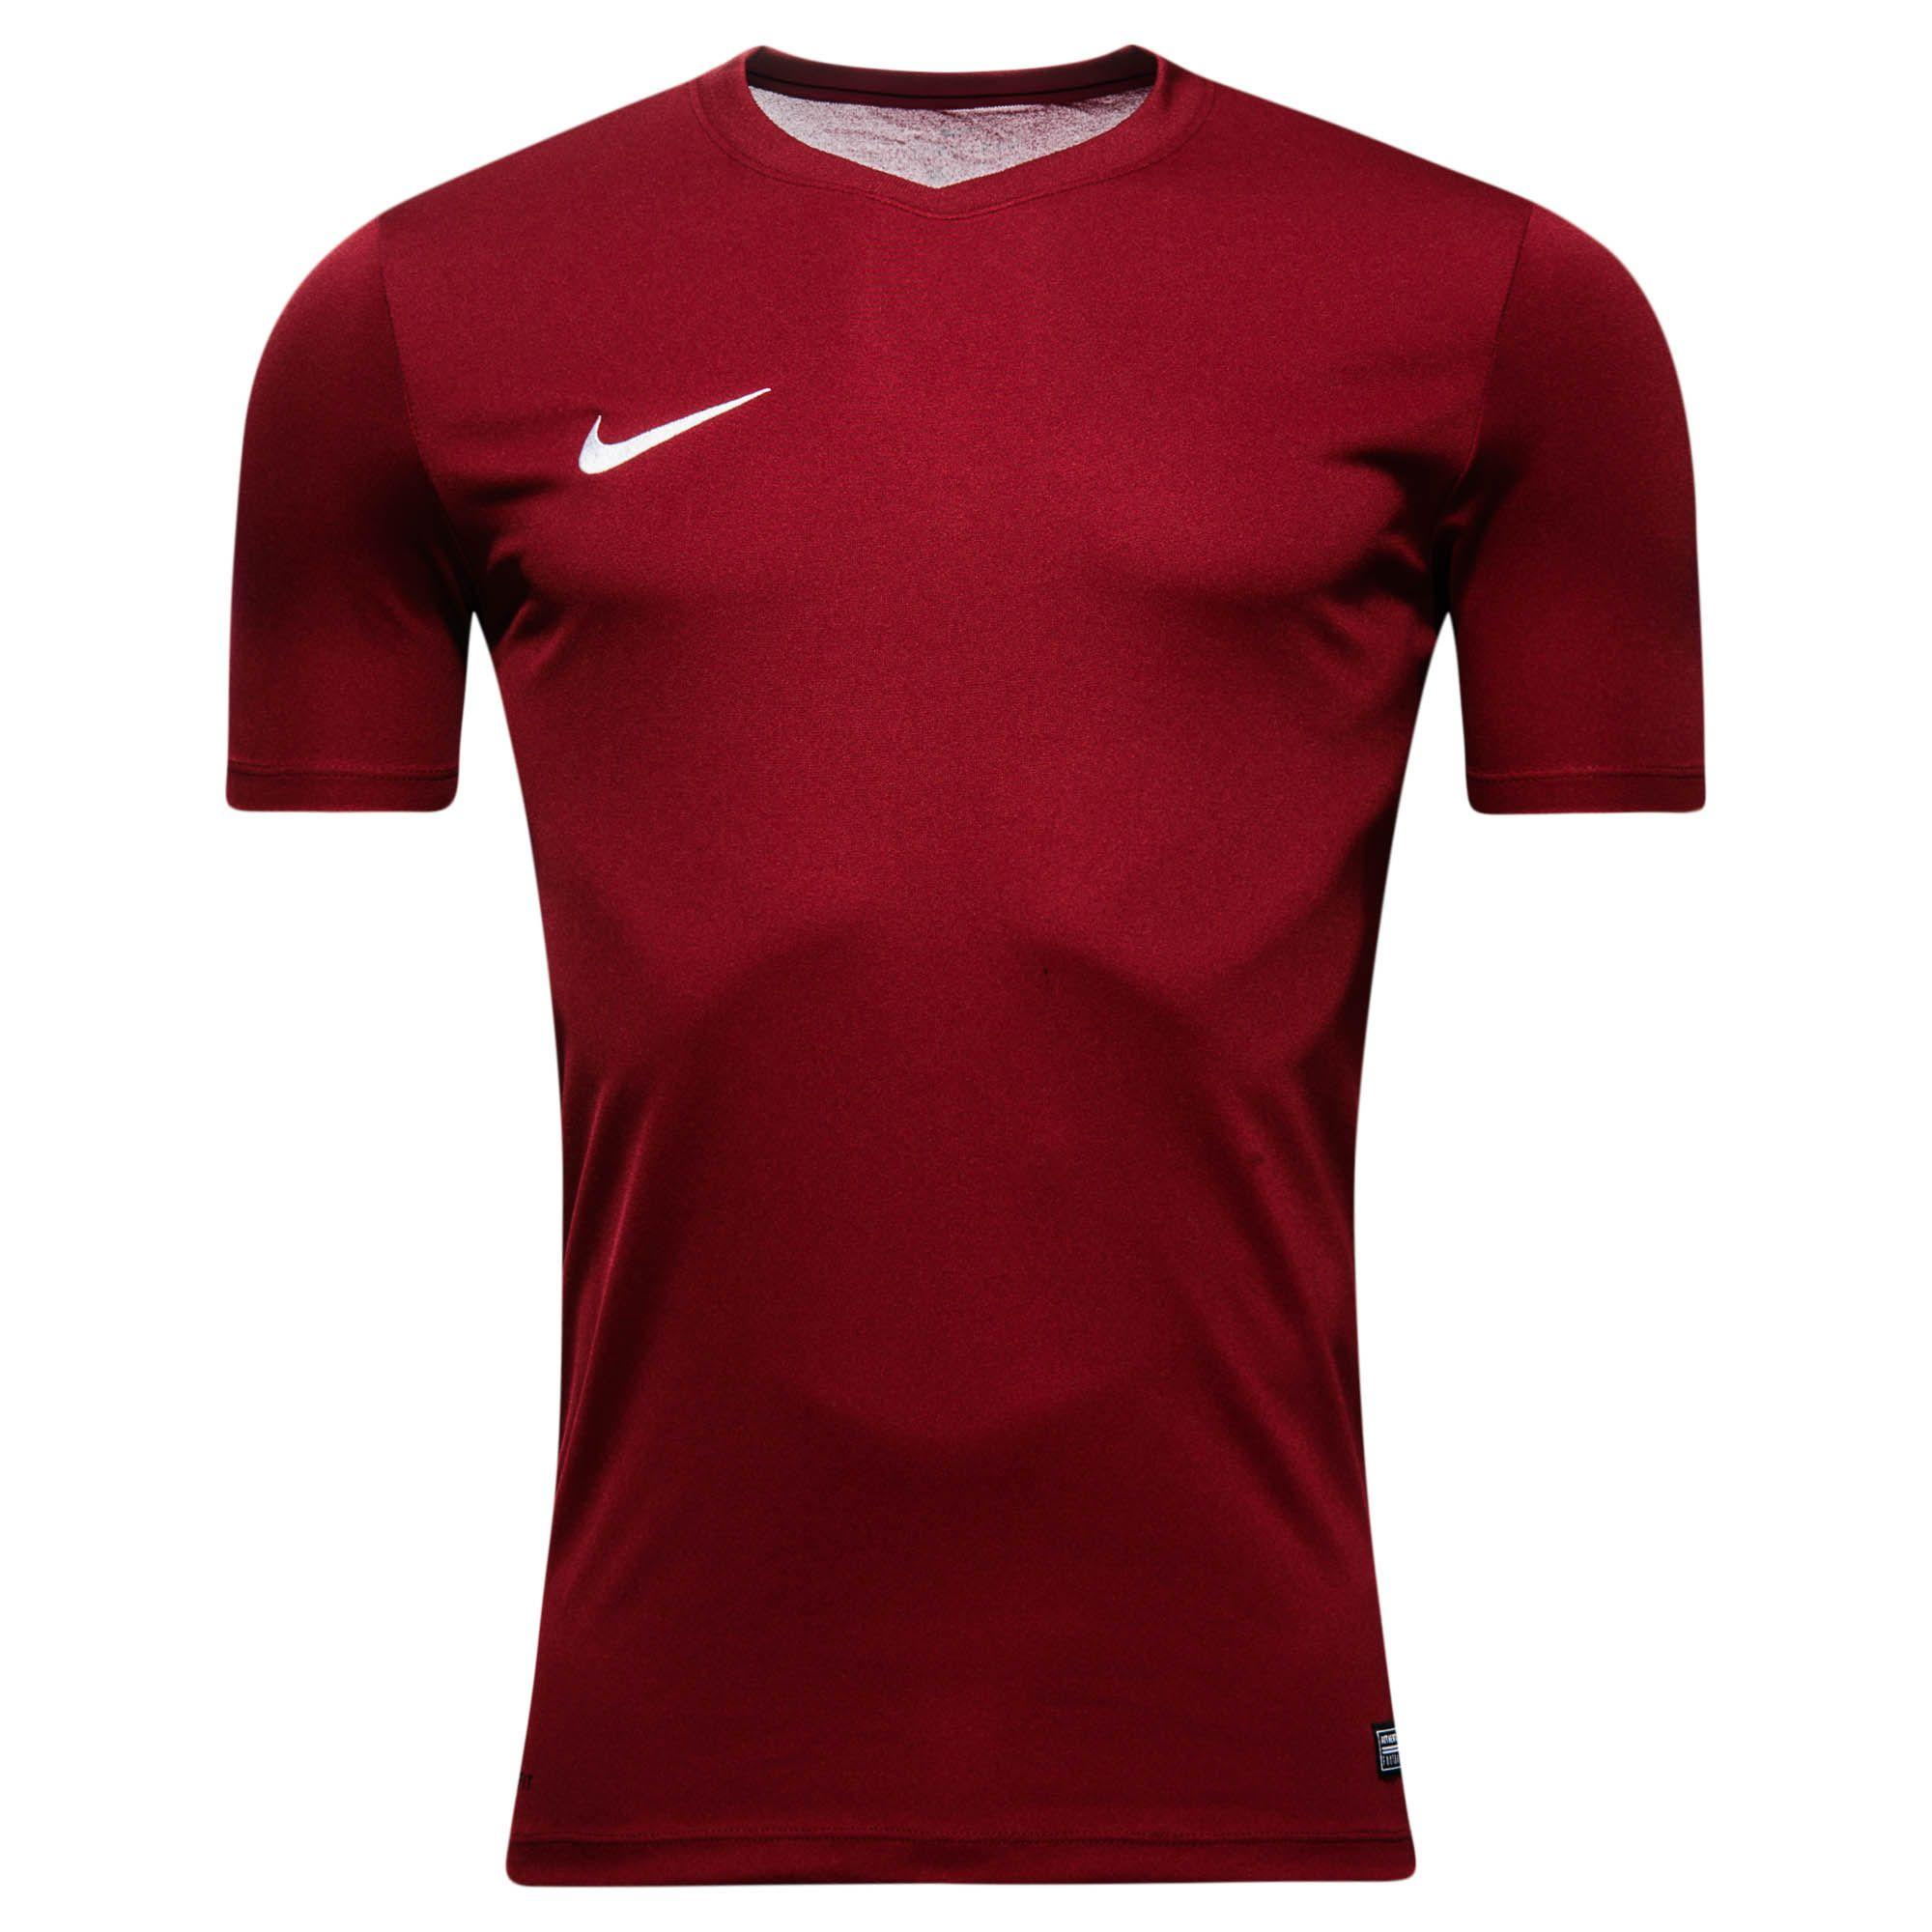 vans authentic lo pro pas cher - Nike Maillot de Football Park VI Bordeaux - Junior | www ...